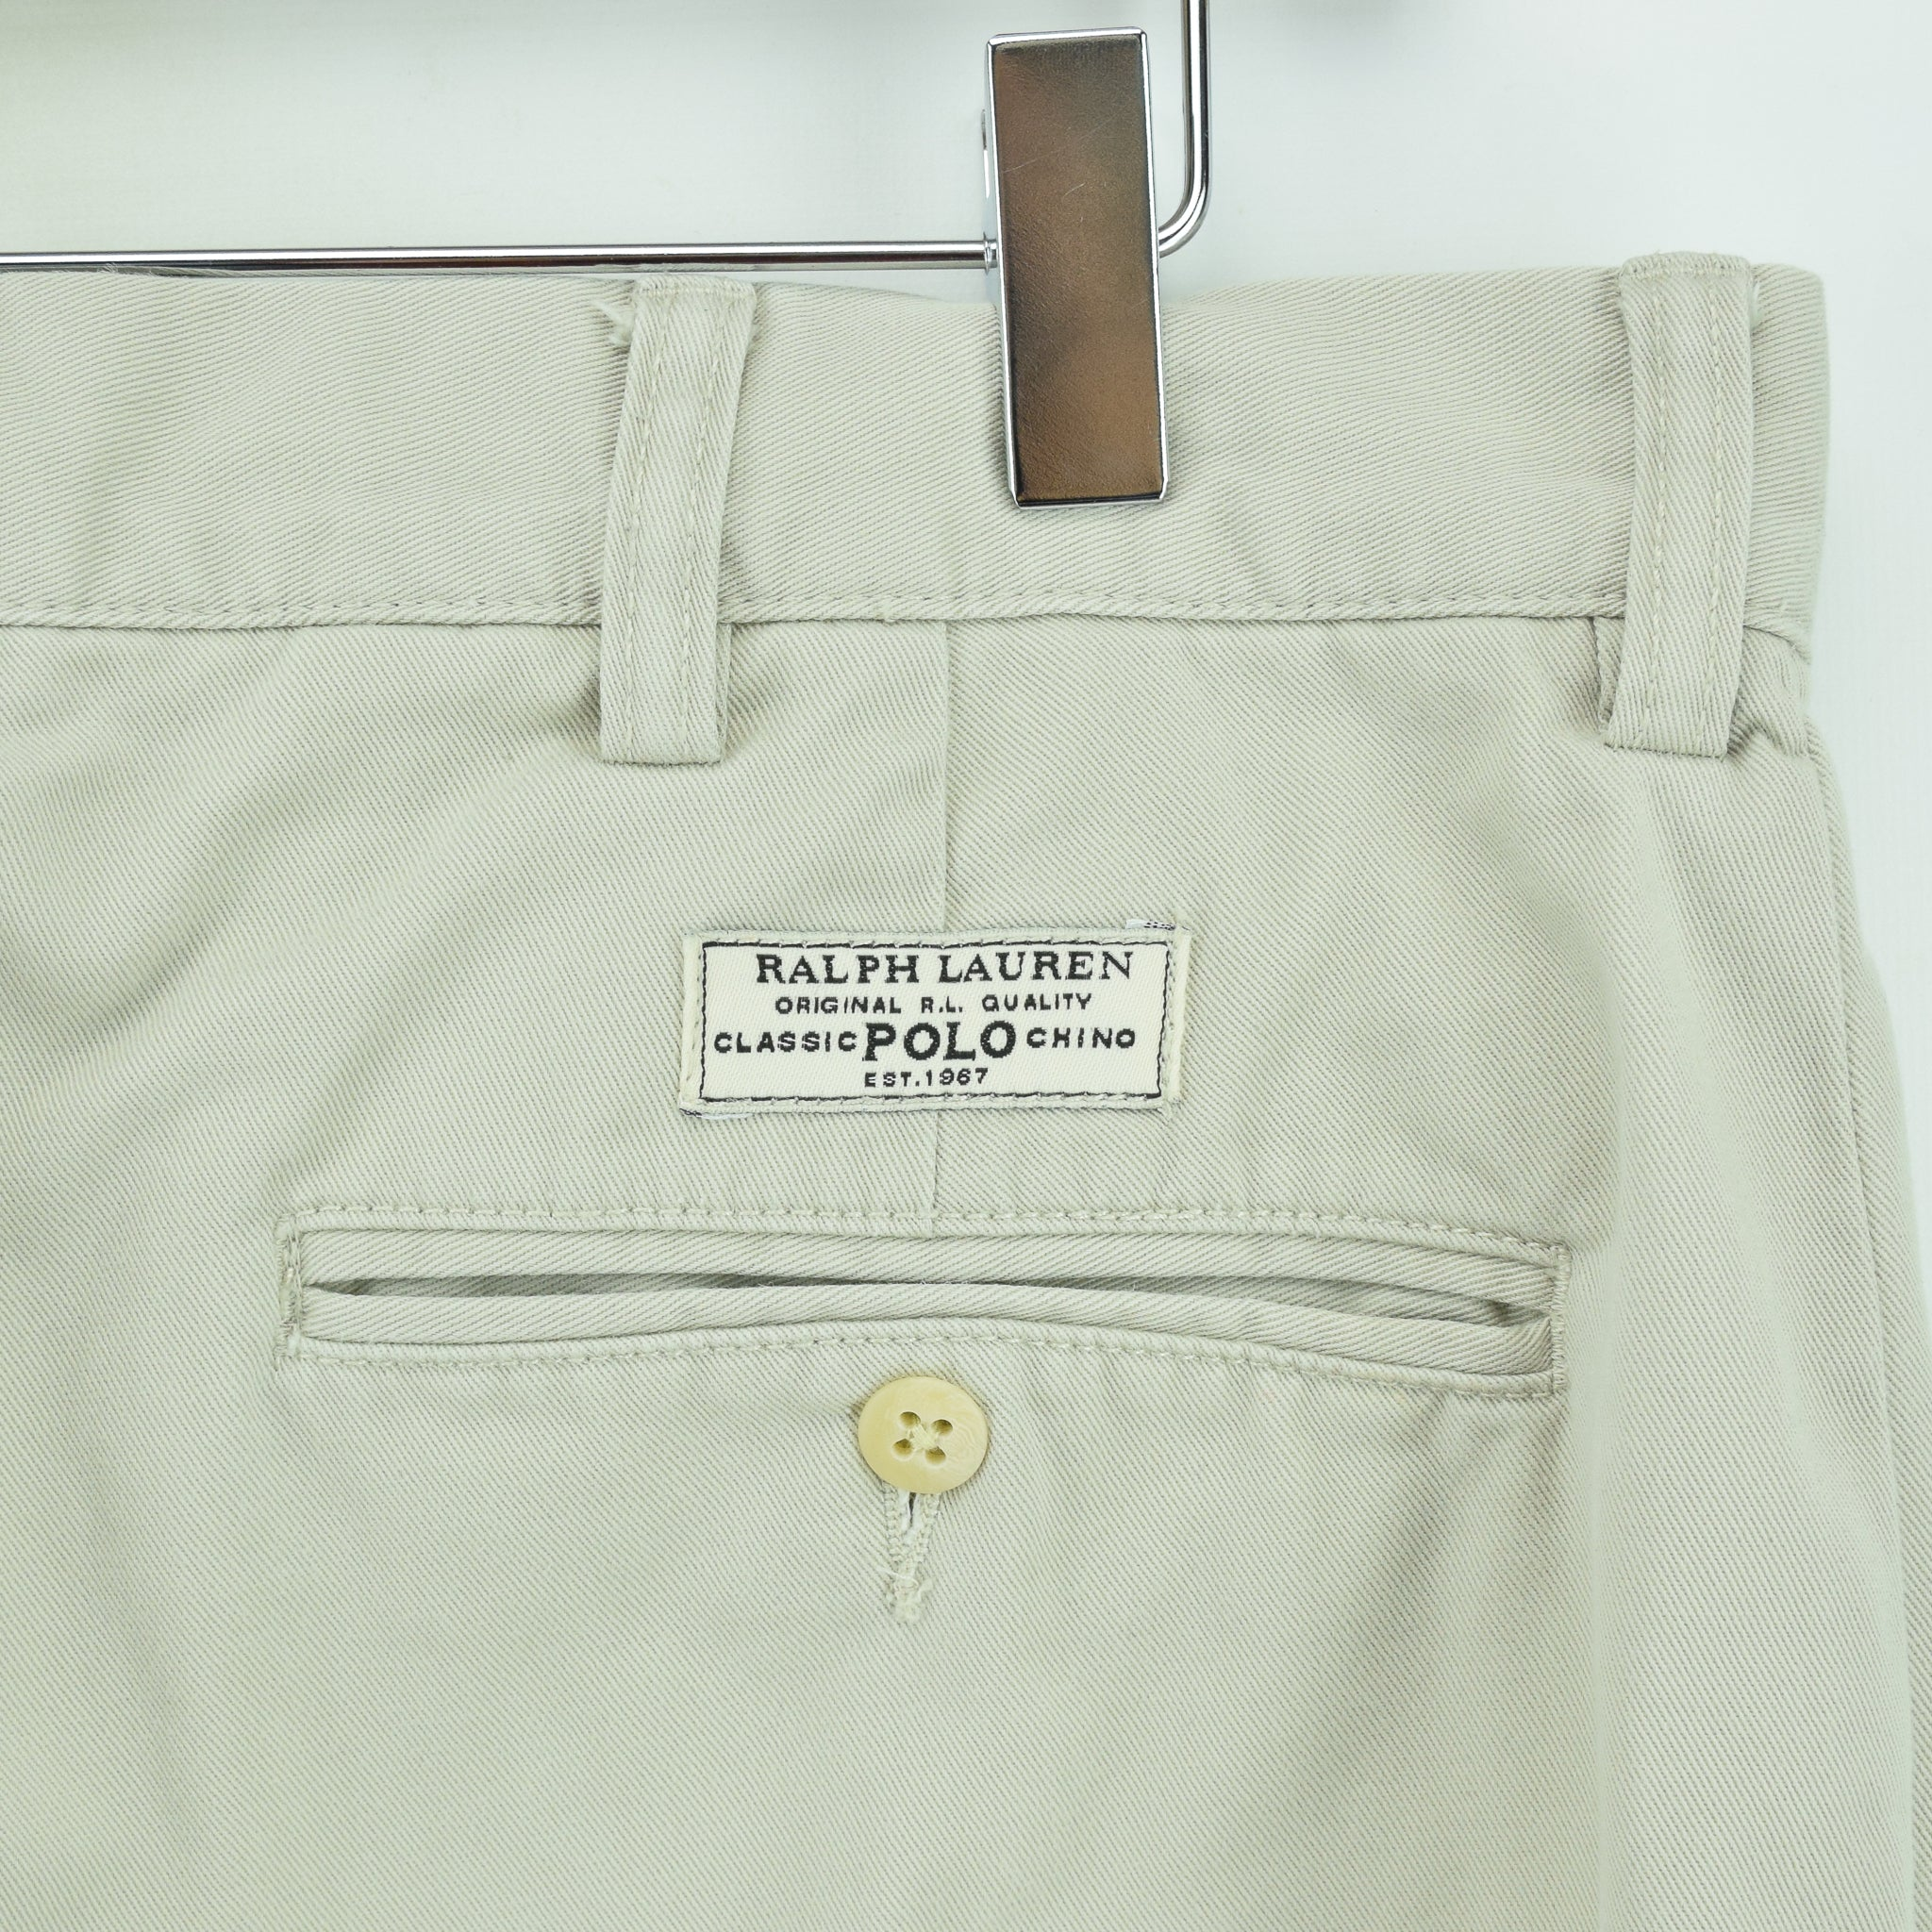 Ralph Lauren Polo Prospect Pant Chinos Stone Flat Front Trousers 32 W 30 L back pocket